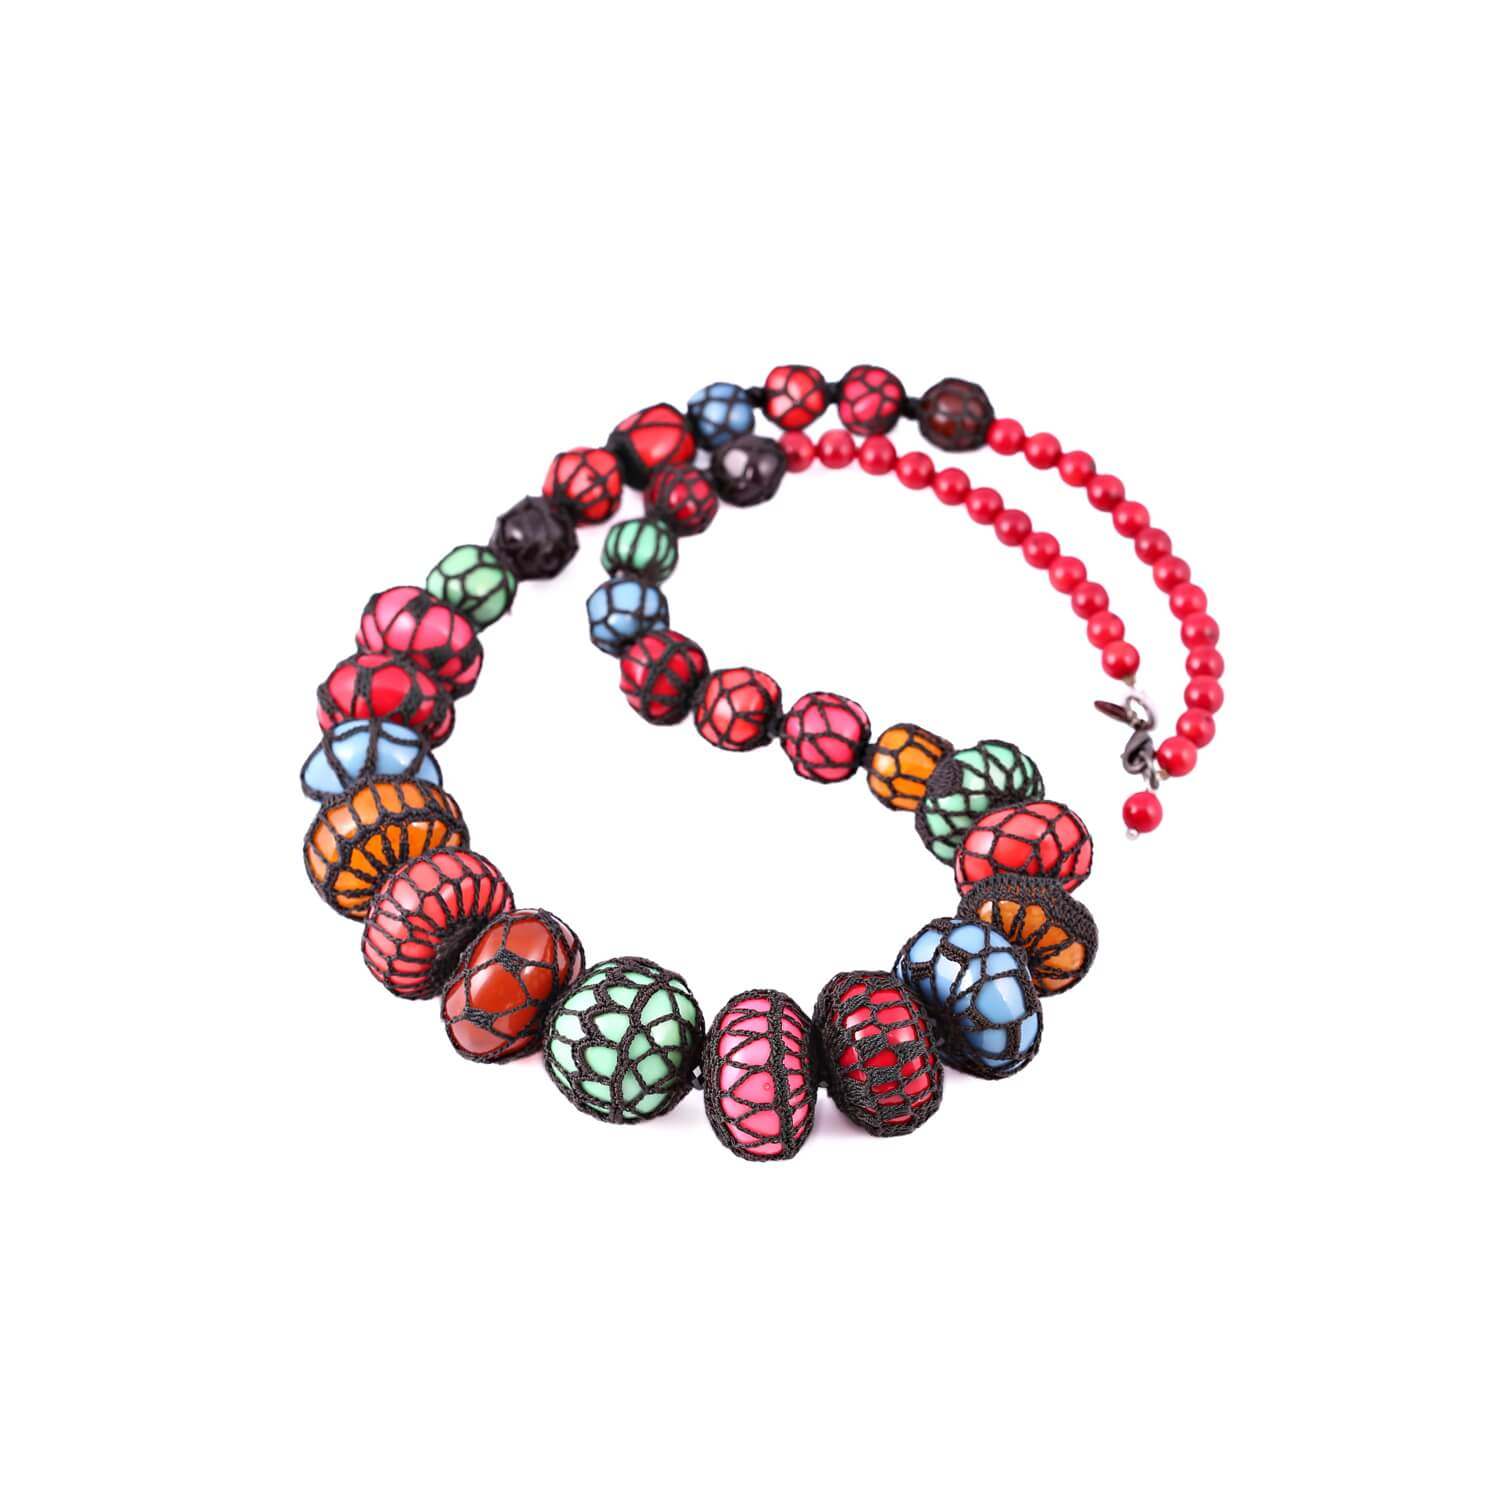 Queen of Sheba Counting Beads Multi-Colour Necklace